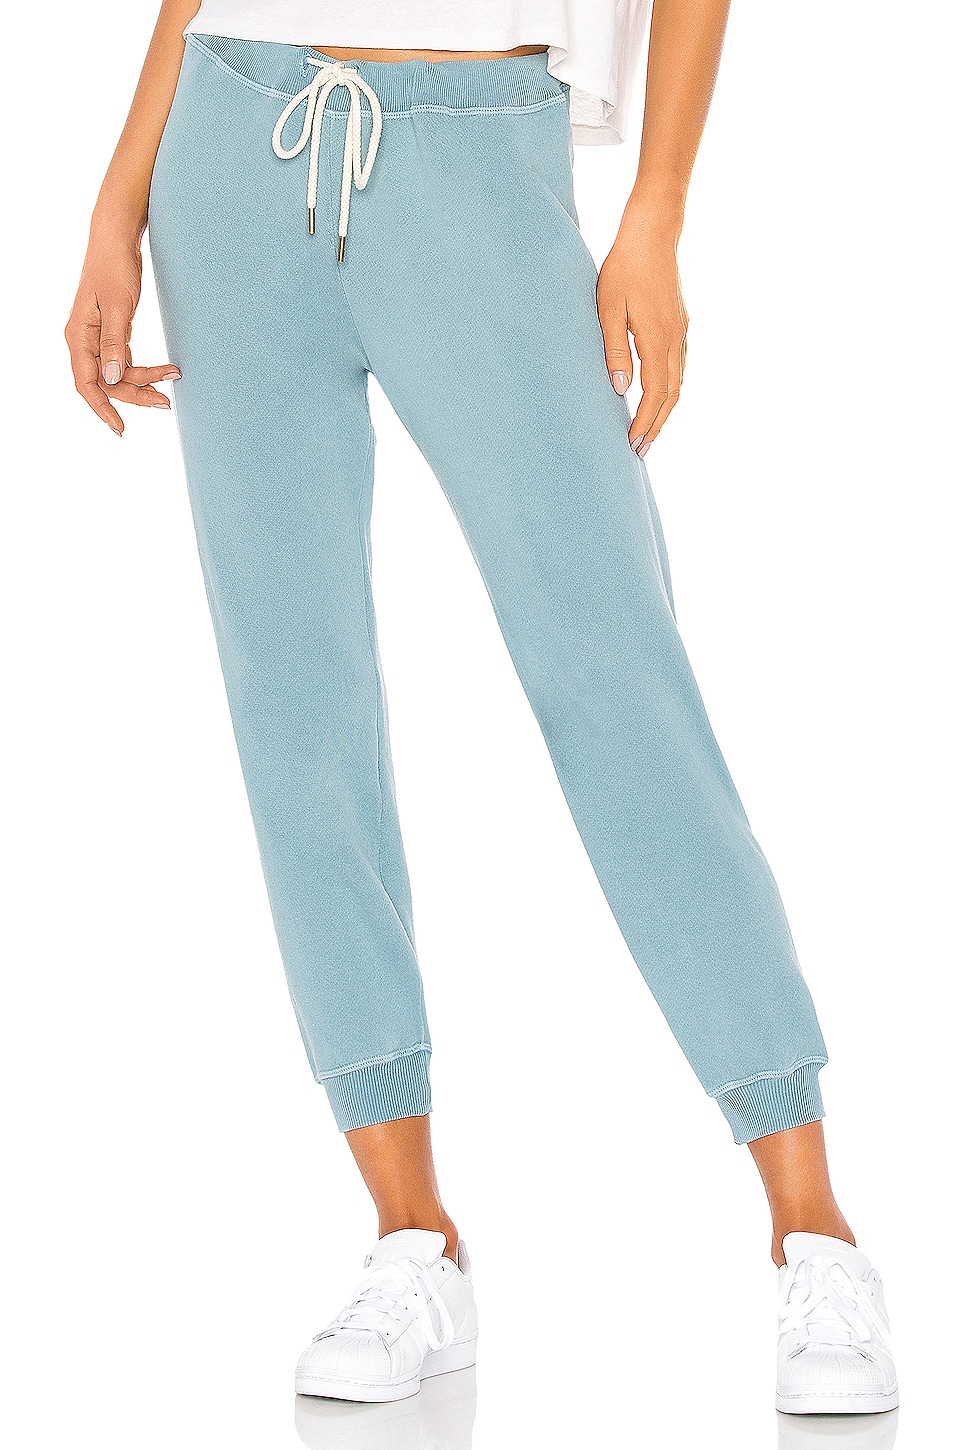 The Great The Cropped Sweatpant in Turquoise